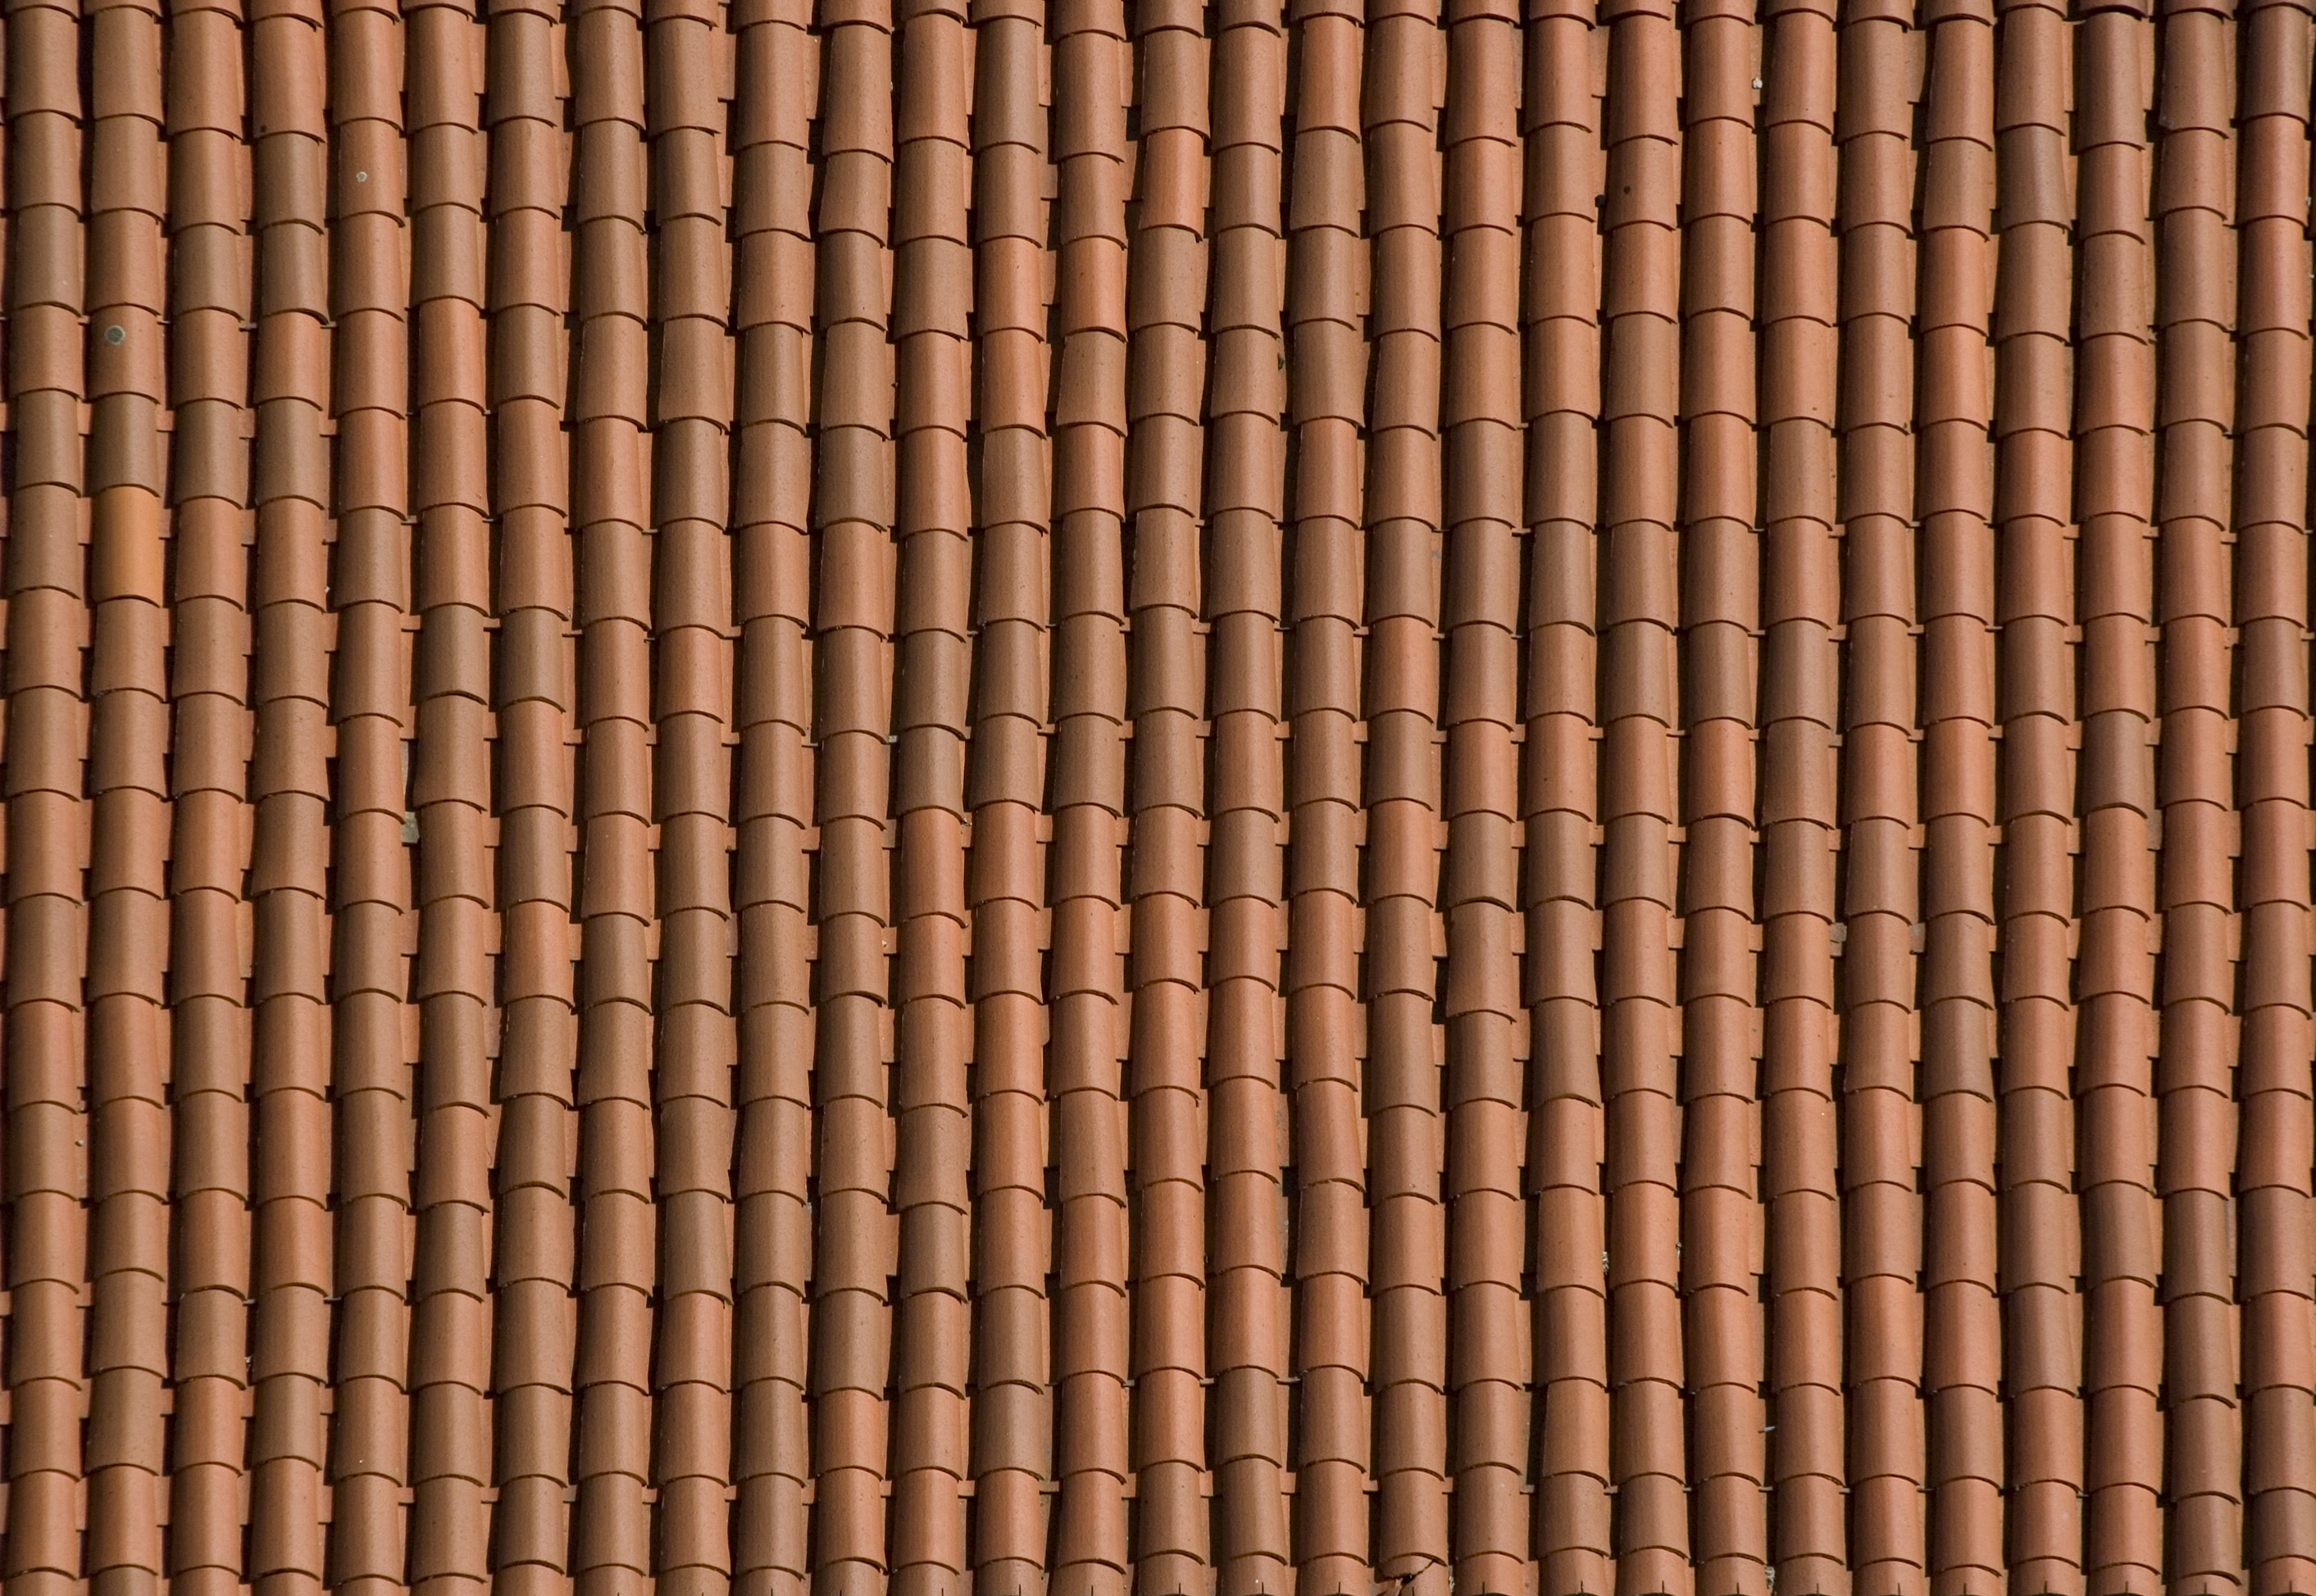 Roof tile roof tile texture for Roof tile patterns